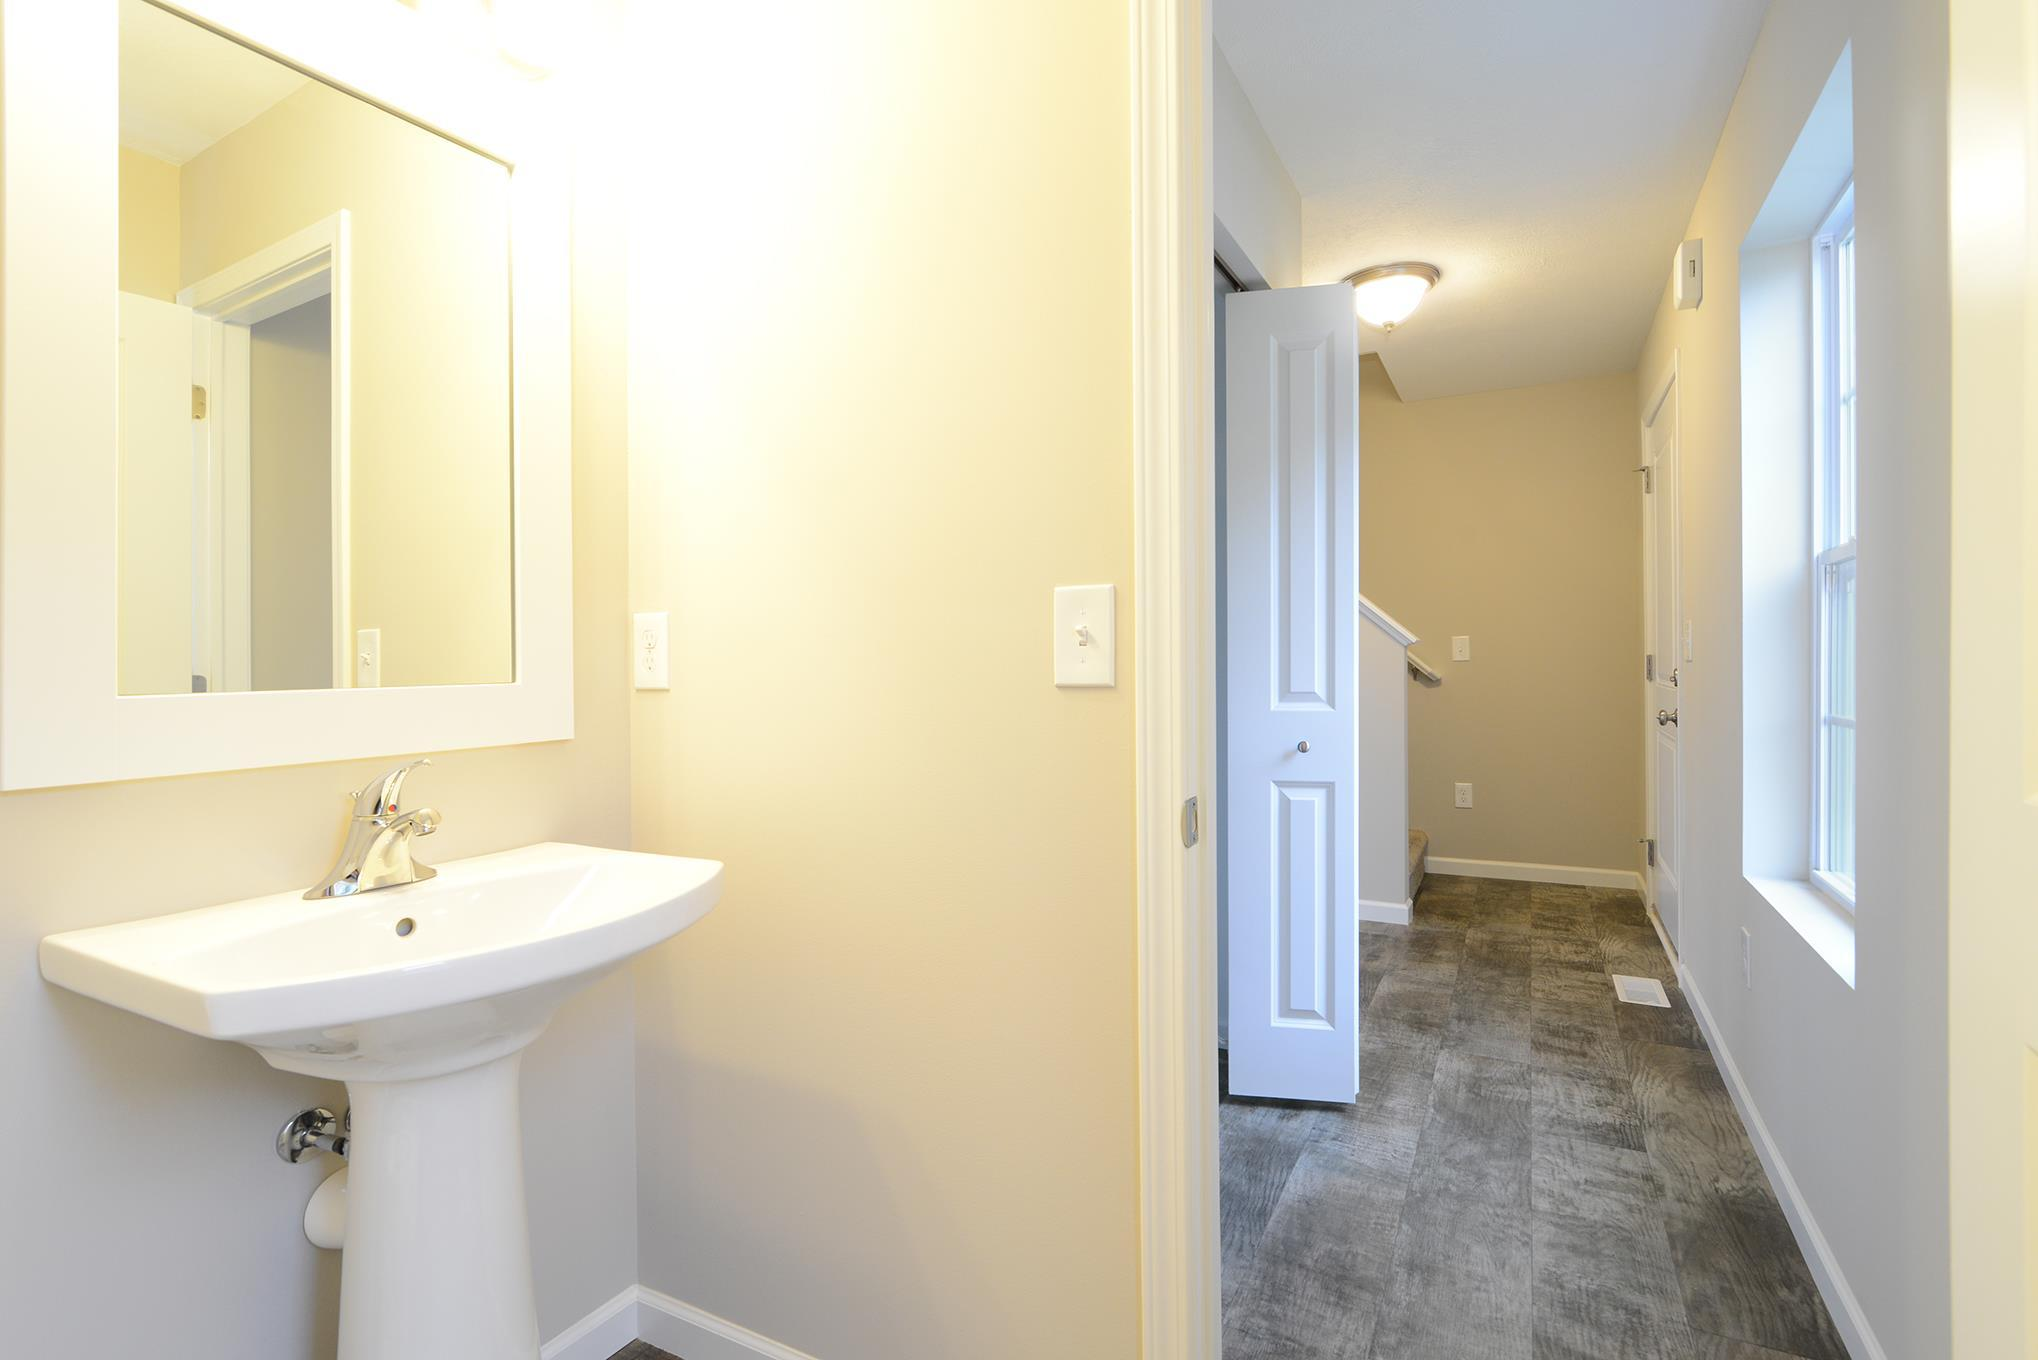 Bathroom featured in the Elements 1700 By Allen Edwin Homes in South Bend, IN